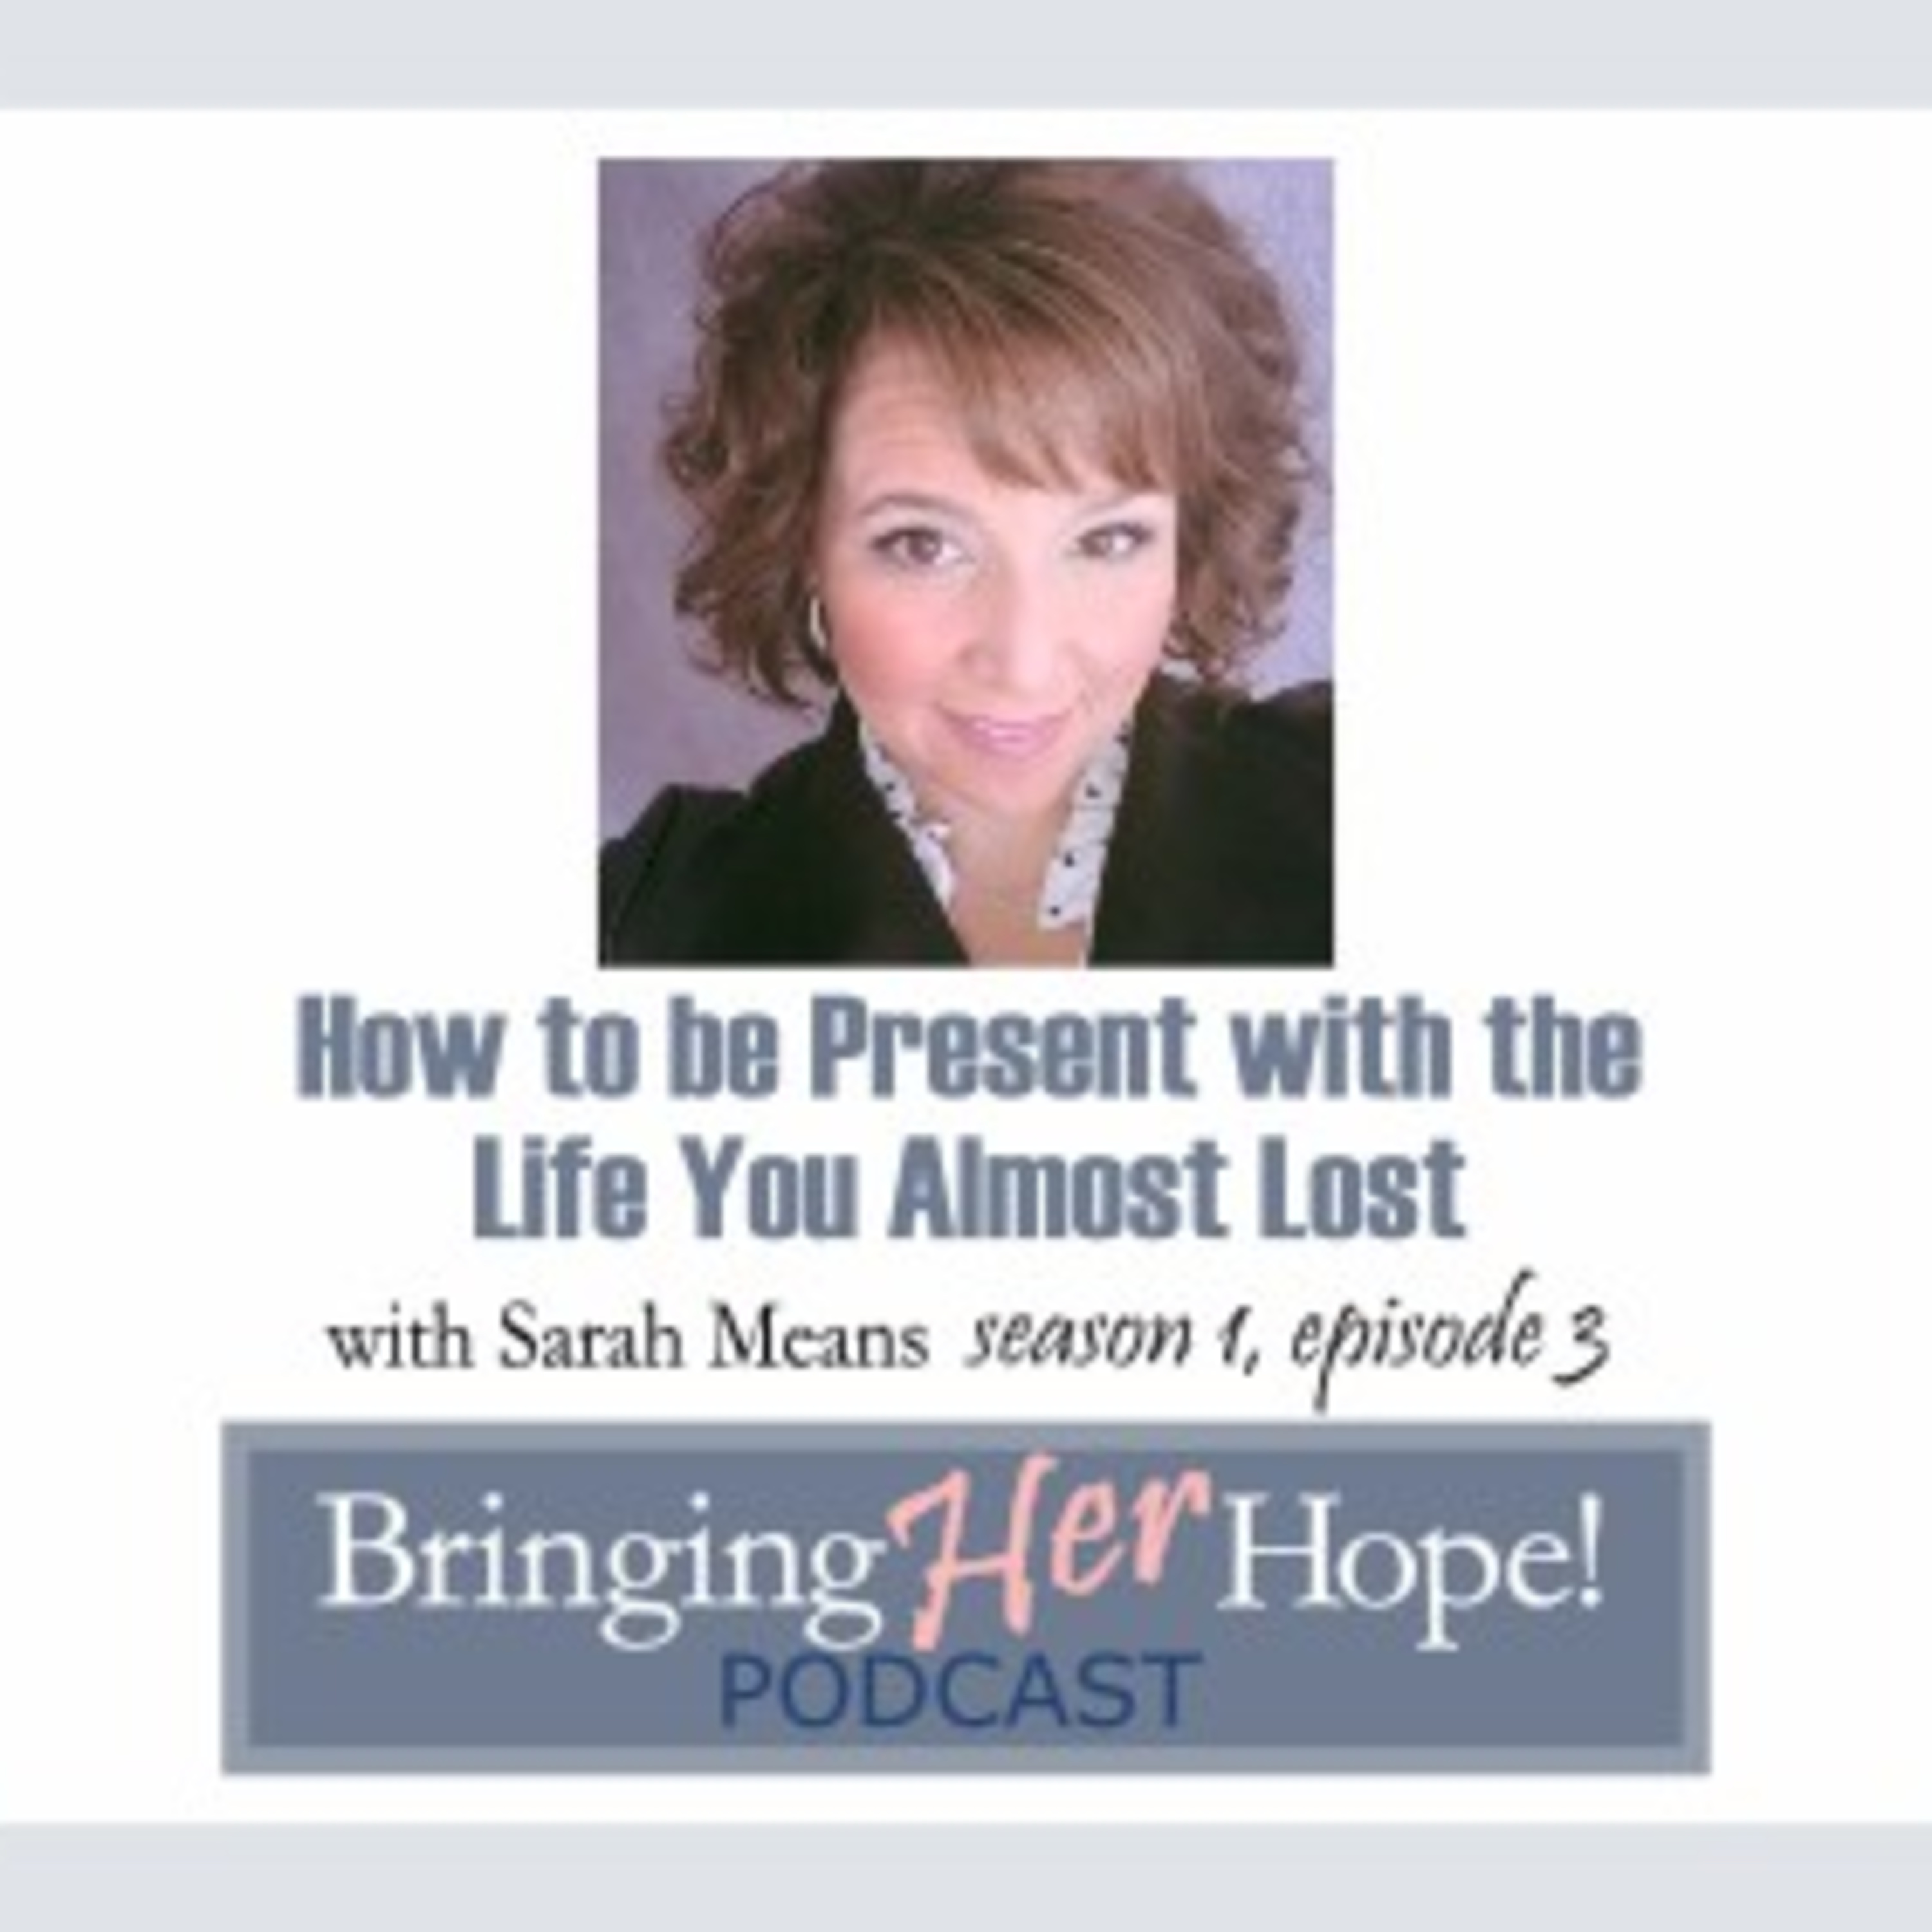 Episode 3: How to be present in the life that you almost lost with special guest Sarah Means